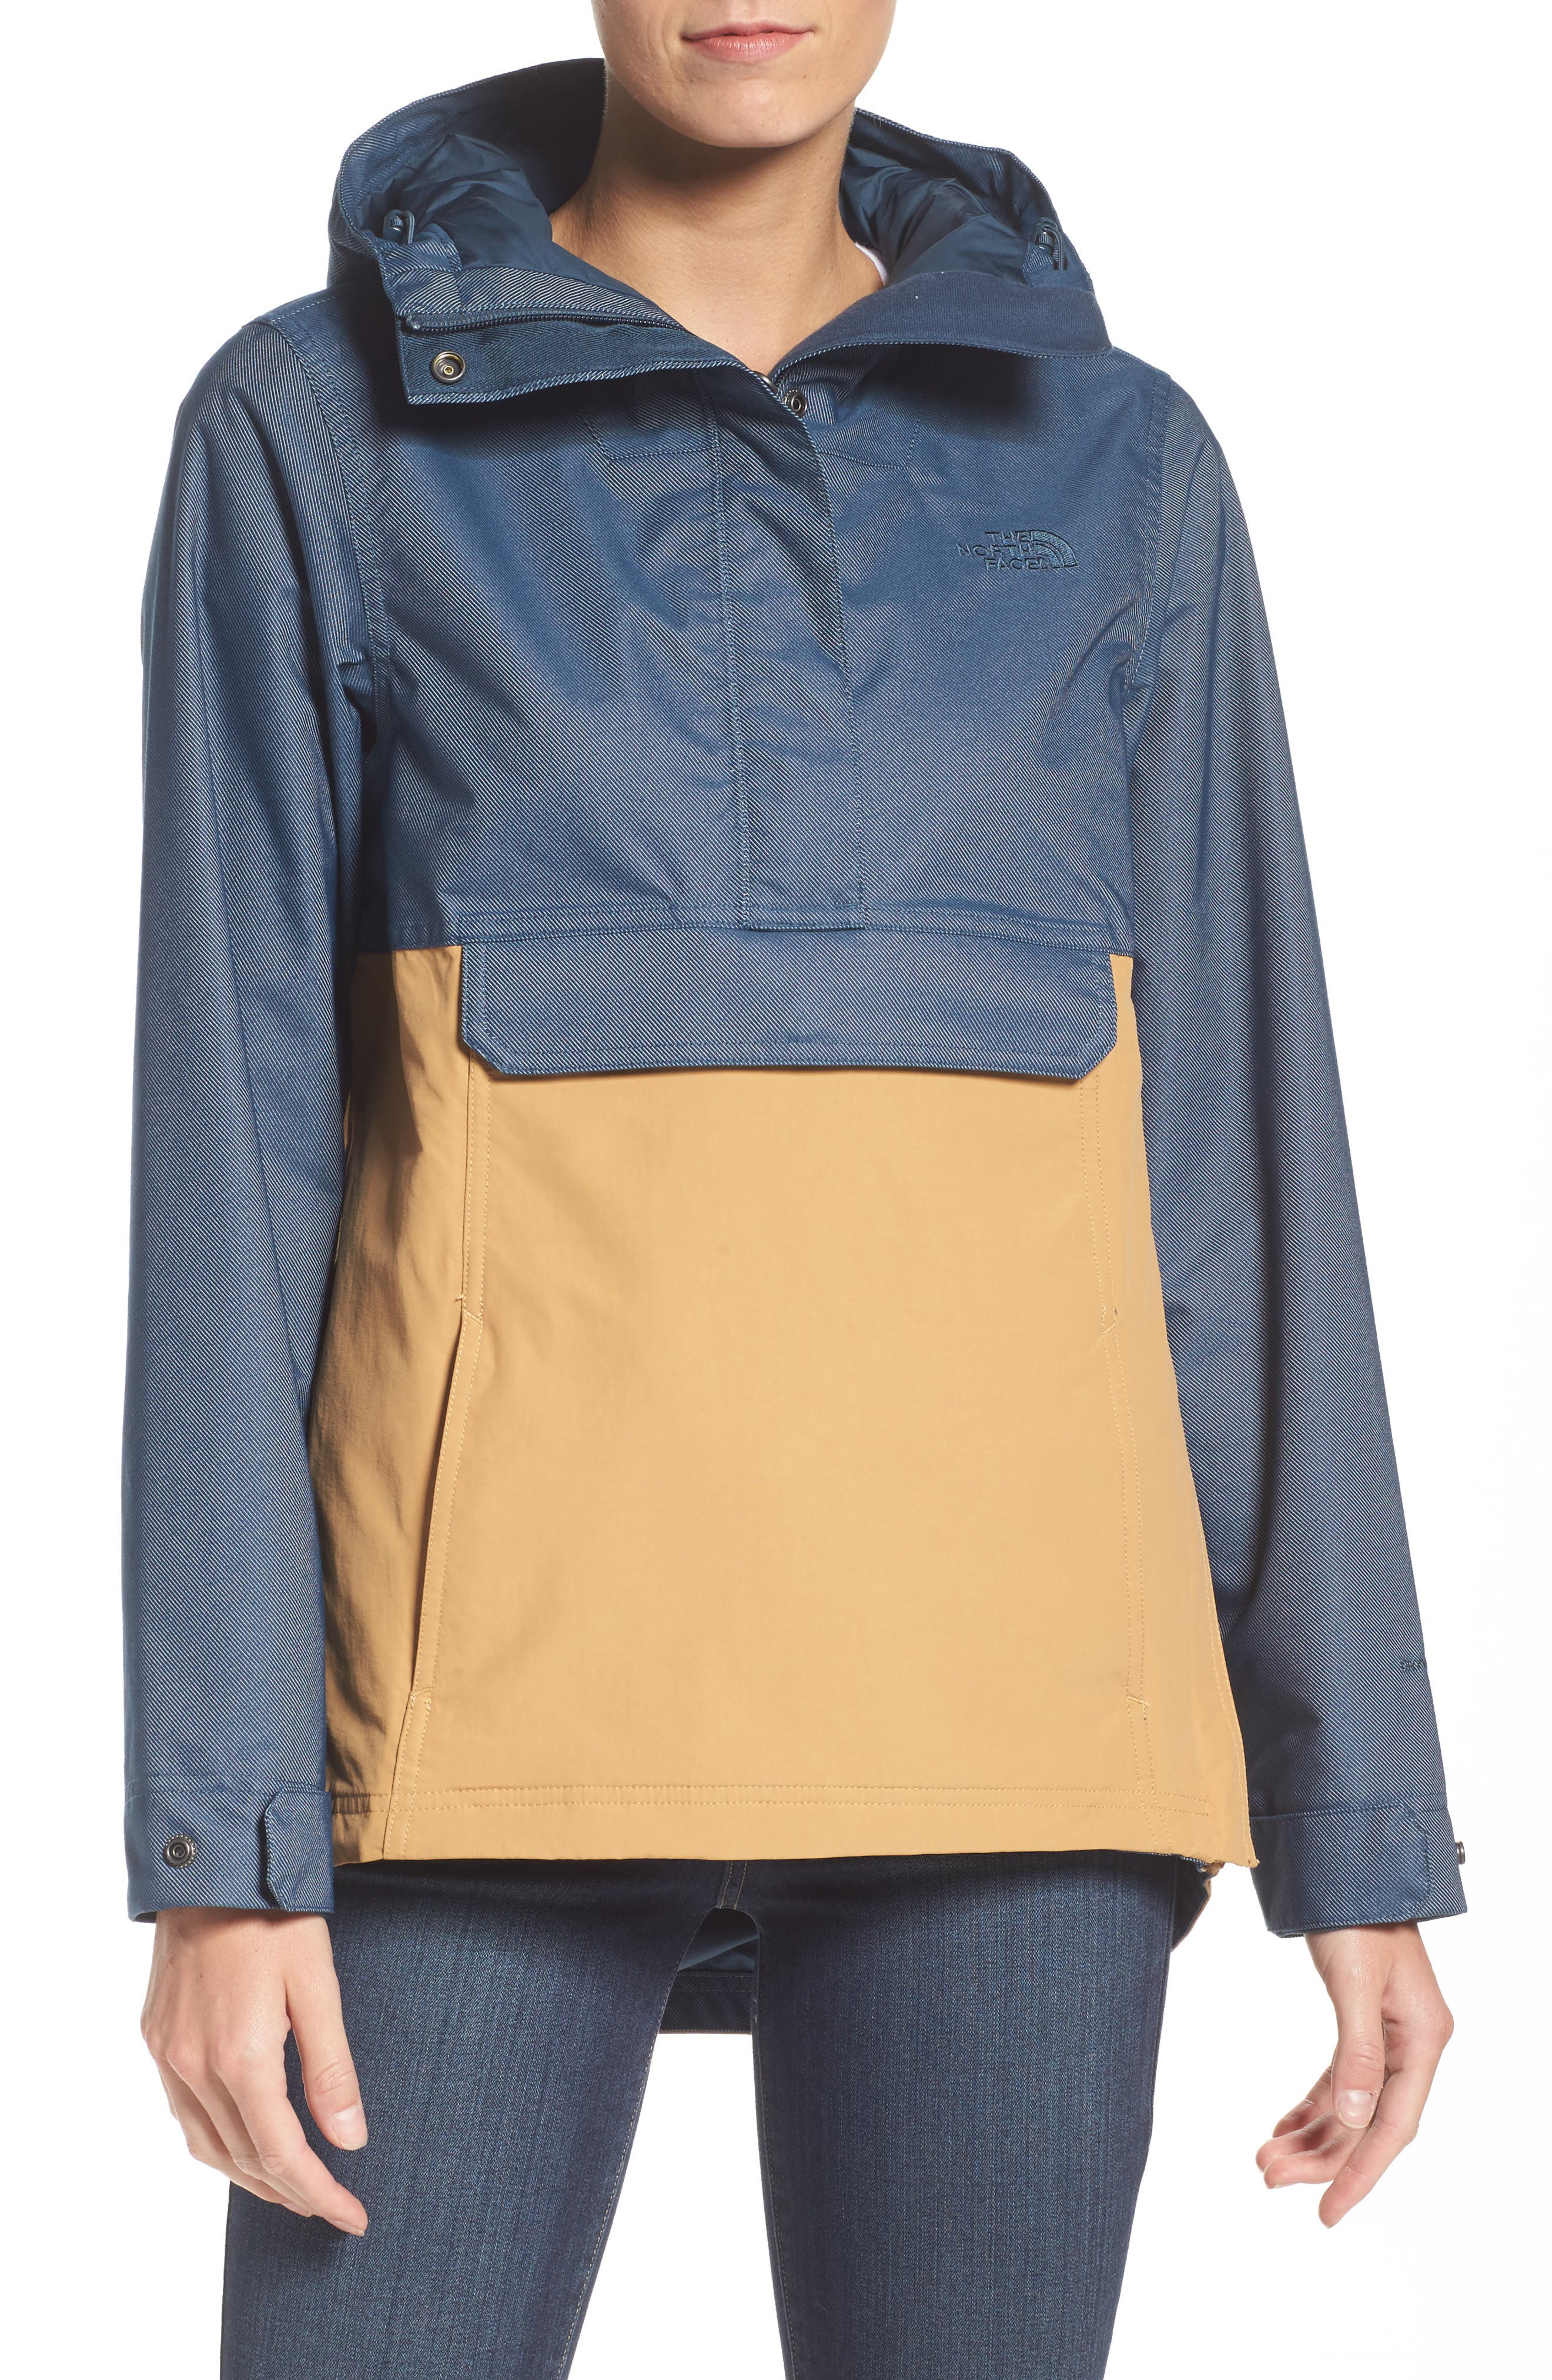 Cadet Anorak Rain Jacket,                             Main thumbnail 1, color,                             Biscuit Tan Ink Blue